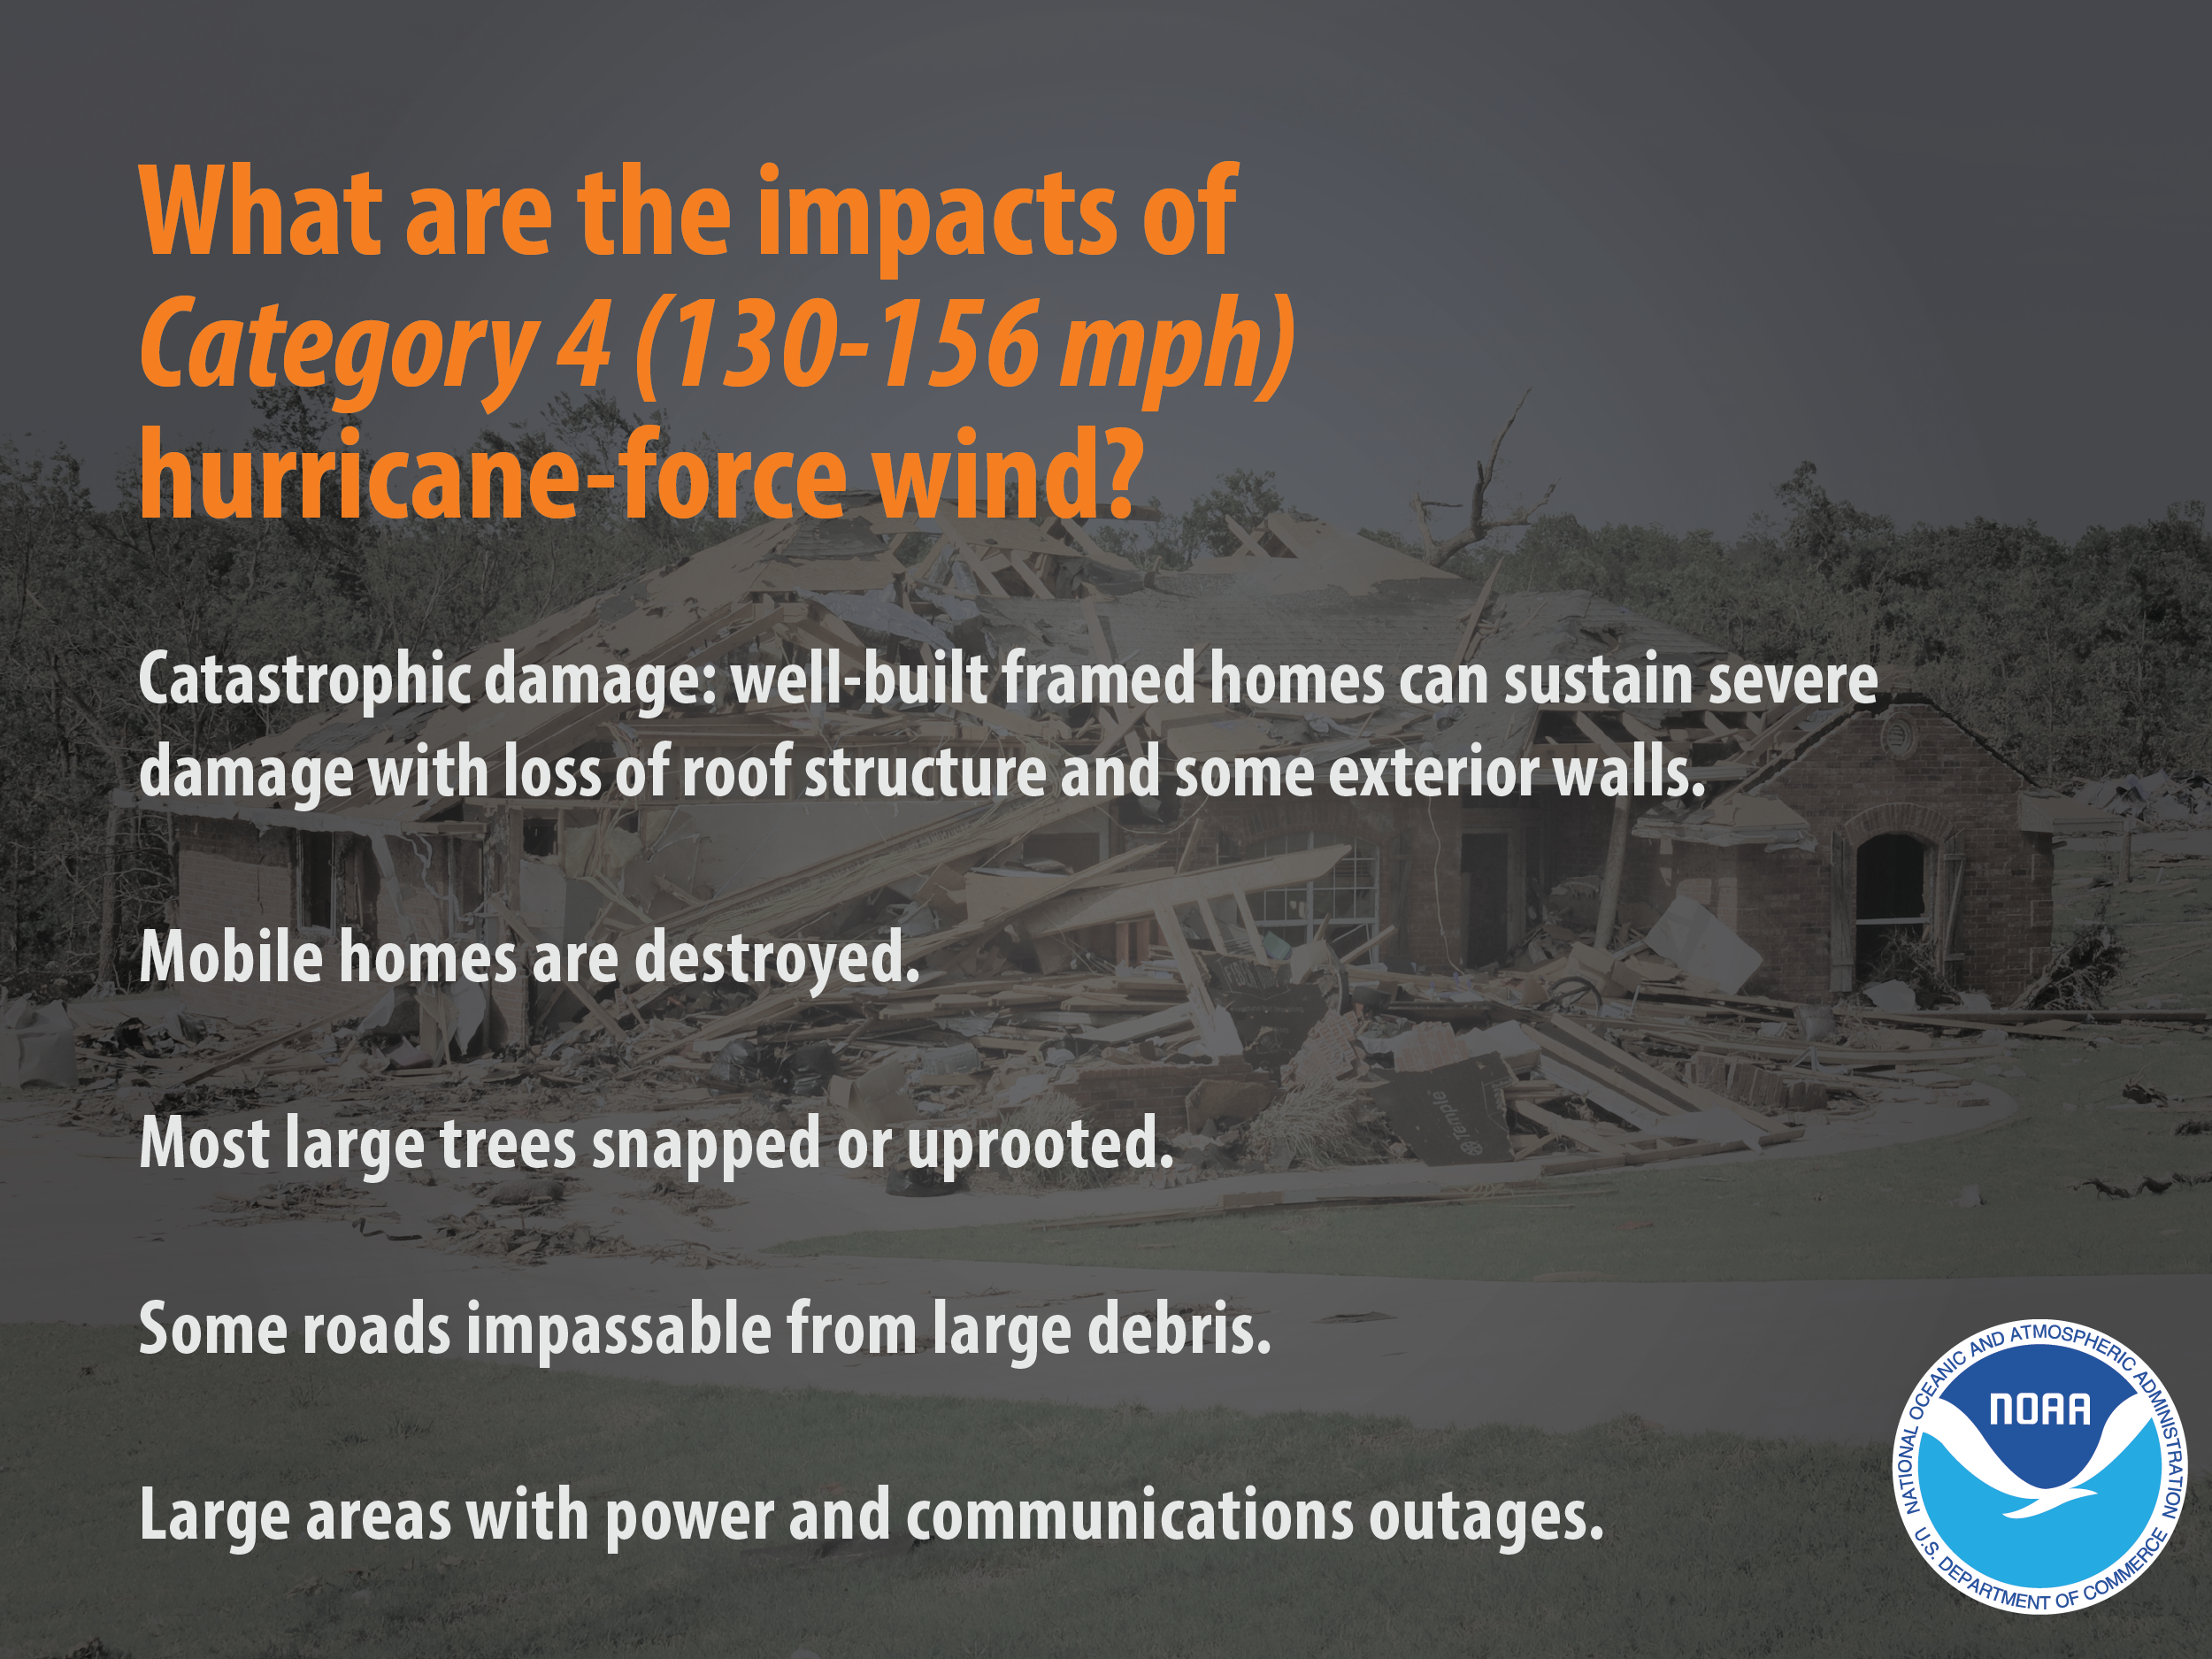 What are the impacts of Category 4 (130-156 mph) hurricane-force wind? Catastrophic damage: well-built framed homes can sustain severe damage with loss of roof structure and some exterior walls. Mobile homes are destroyed. Most large trees snapped or uprooted. Some roads impassable from large debris. Large areas with power and communication outages.